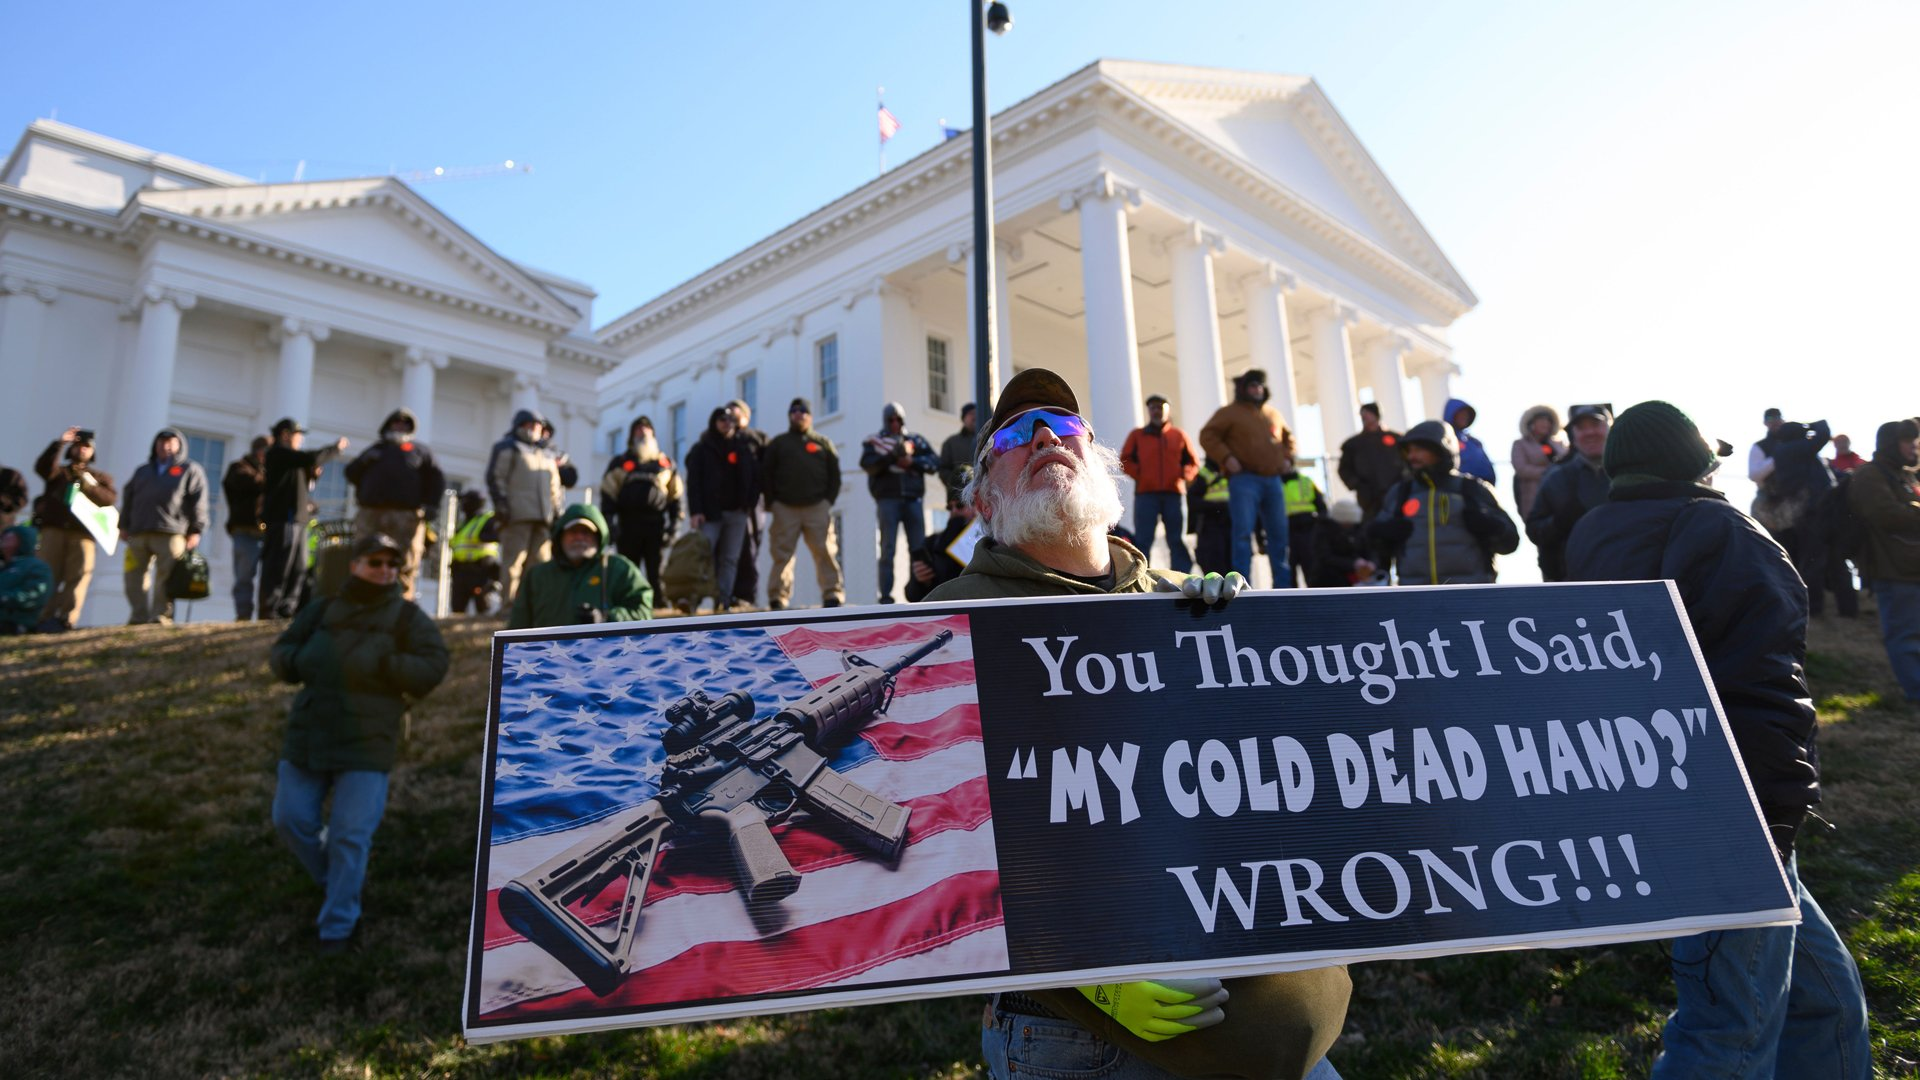 A pro-gun demonstrator holds a sign outside the Virginia State Capitol in Richmond on Jan. 20, 2020. (Credit: Roberto Schmidt / AFP/ Getty Images)